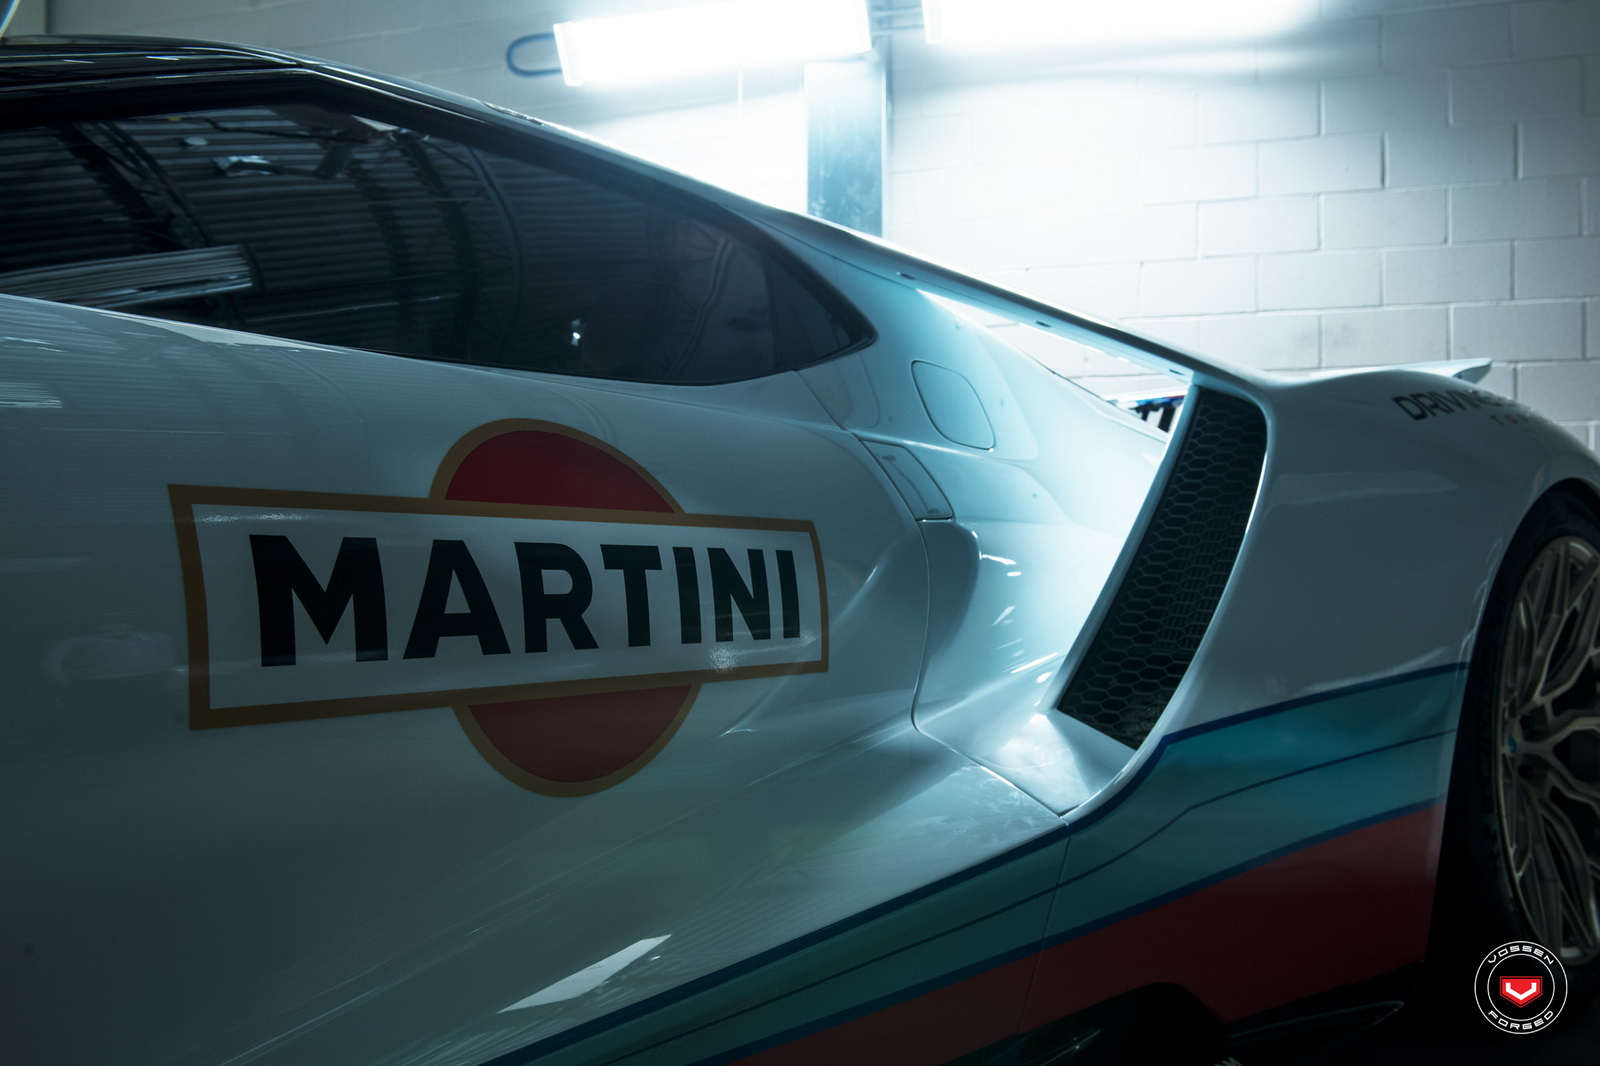 ford-gt-martini-livery-vossen-wheels-23